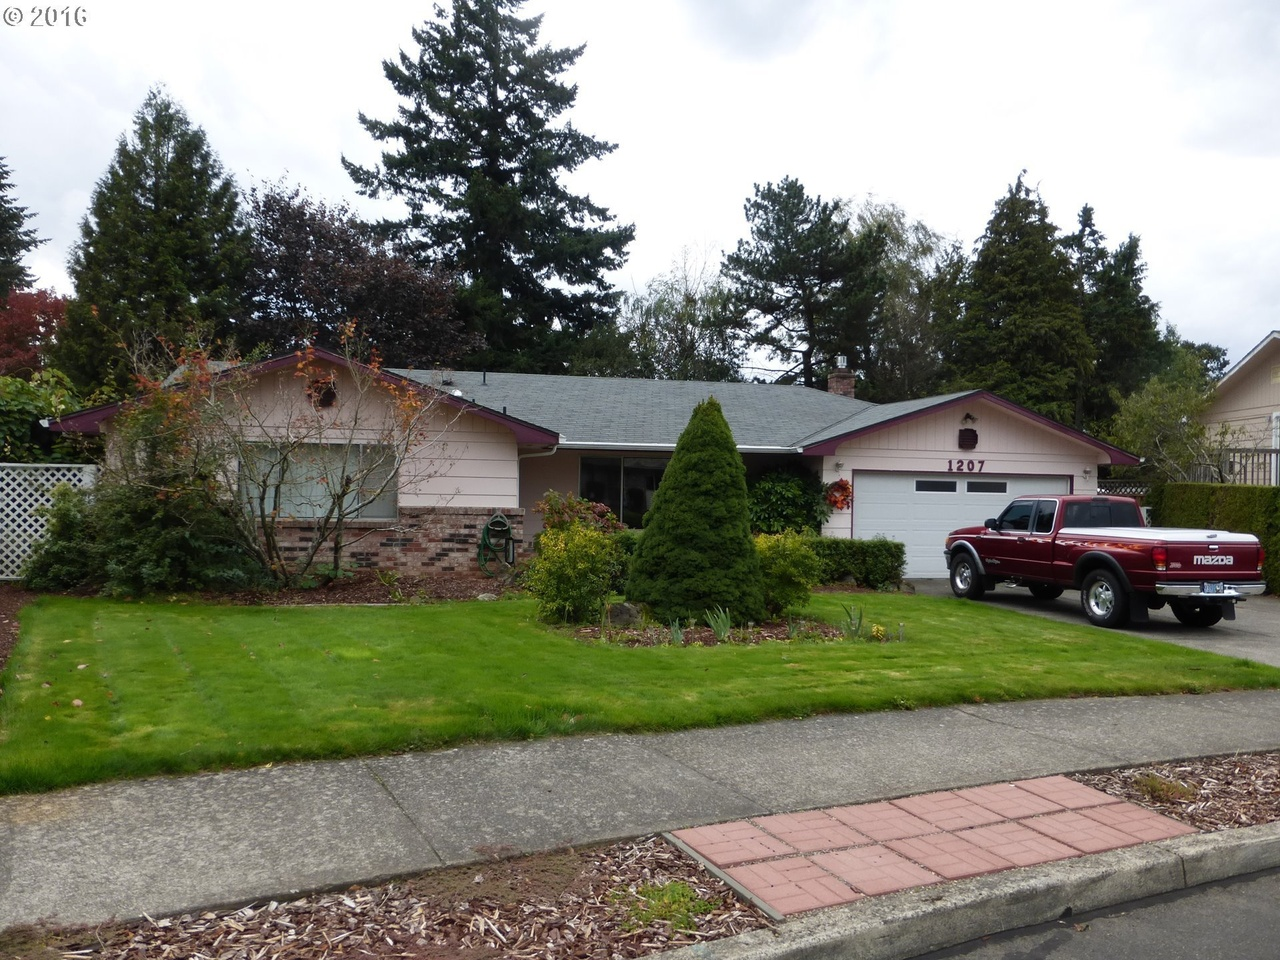 1207 Se 213th Ave Gresham Or 97030 Mls 16000991 Redfin